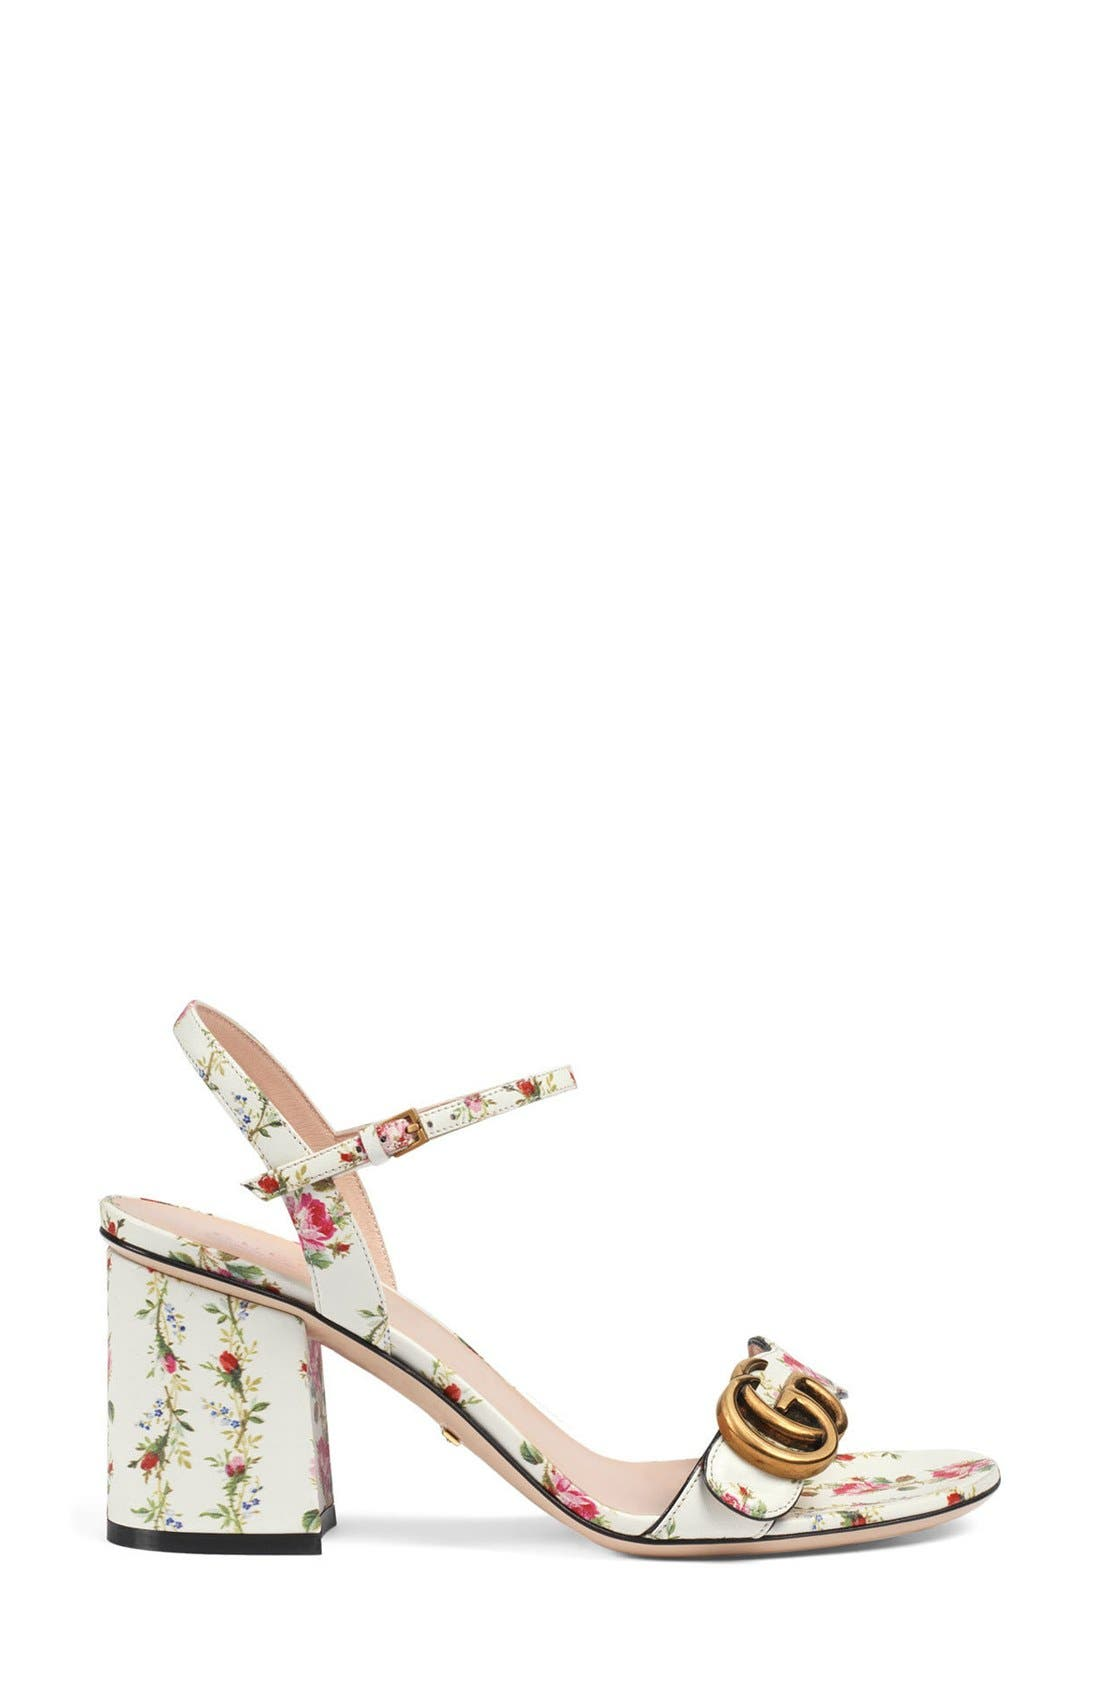 GG Marmont Block Heel Sandal,                             Alternate thumbnail 6, color,                             100